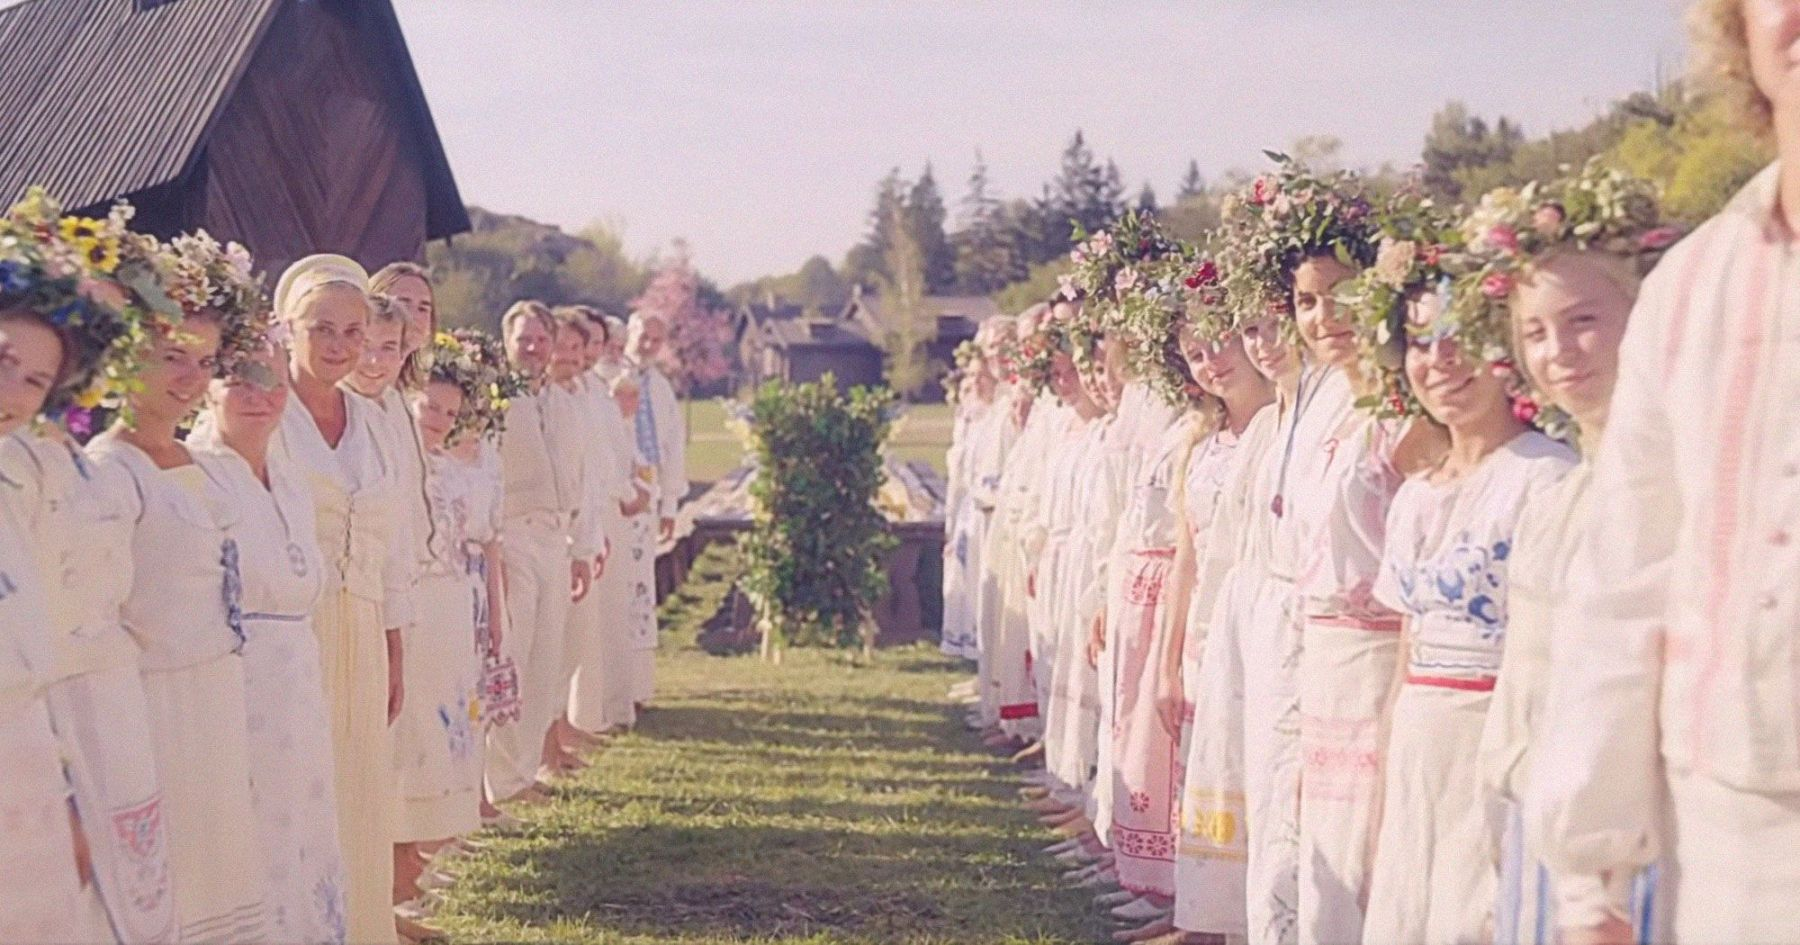 From Ari Aster's Midsommar (A24)